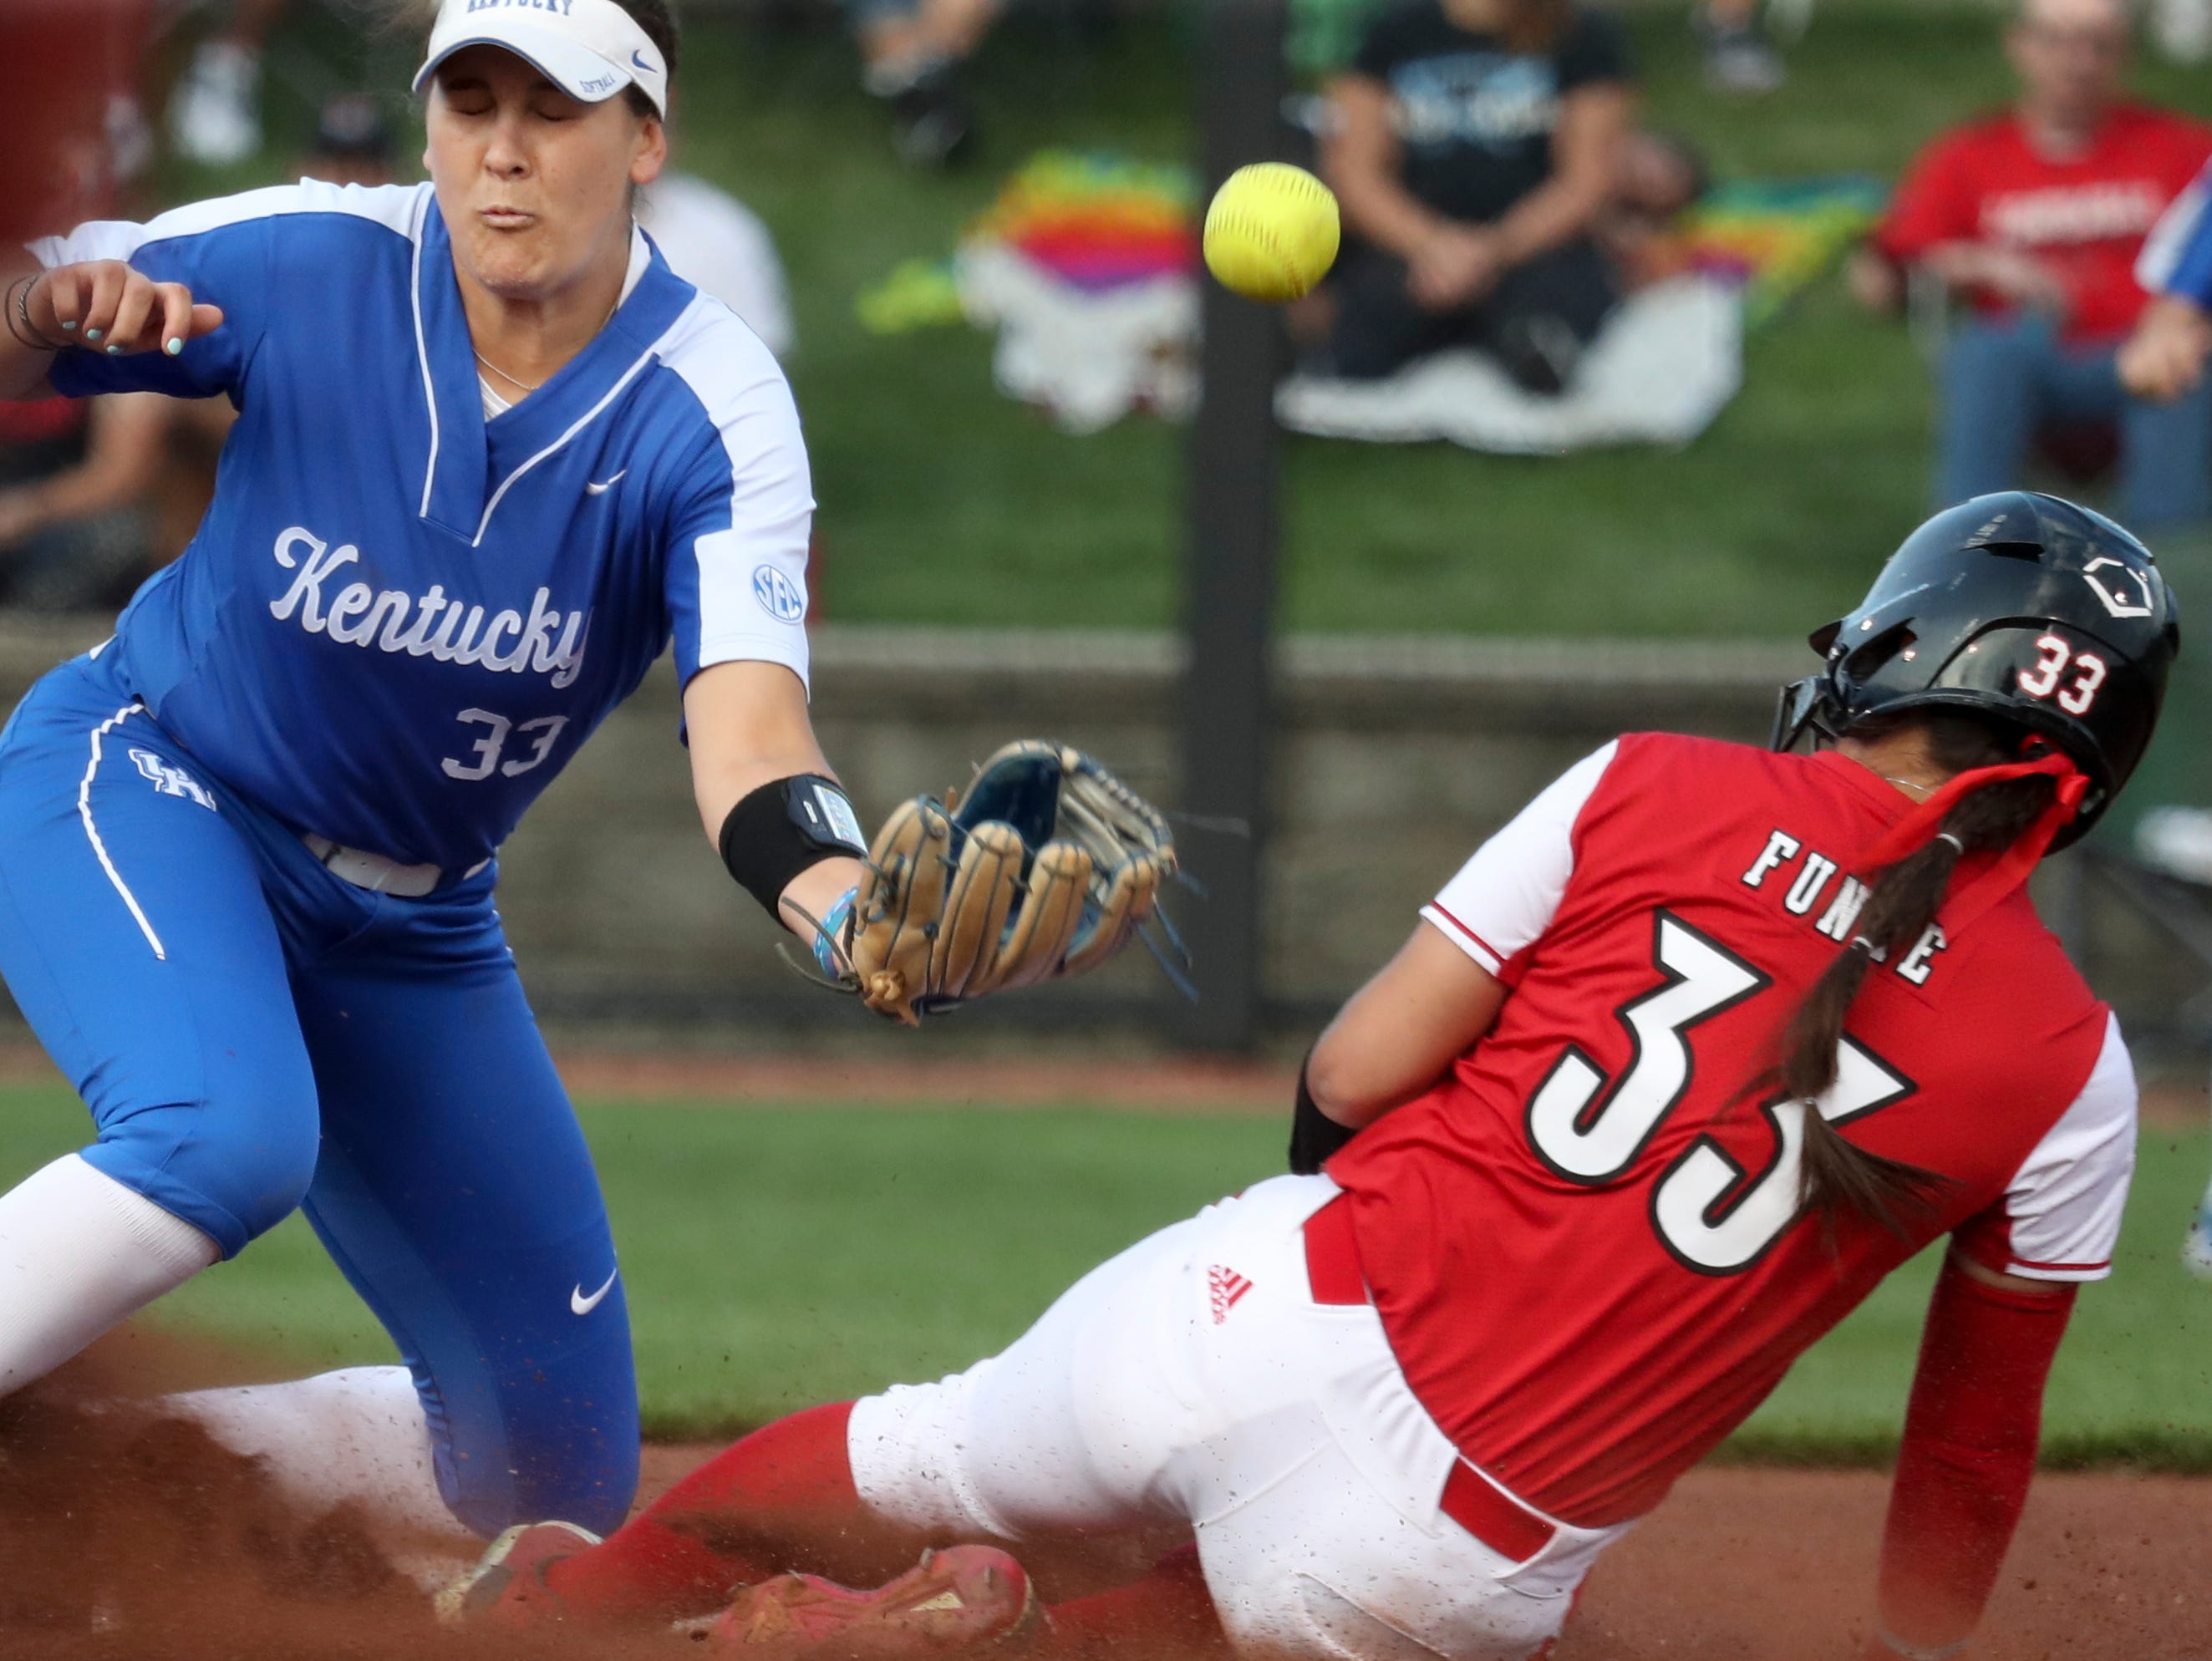 Louisville's Celene Funke slides in to second before the ball gets to Kentucky's Alex Martens on April 17.